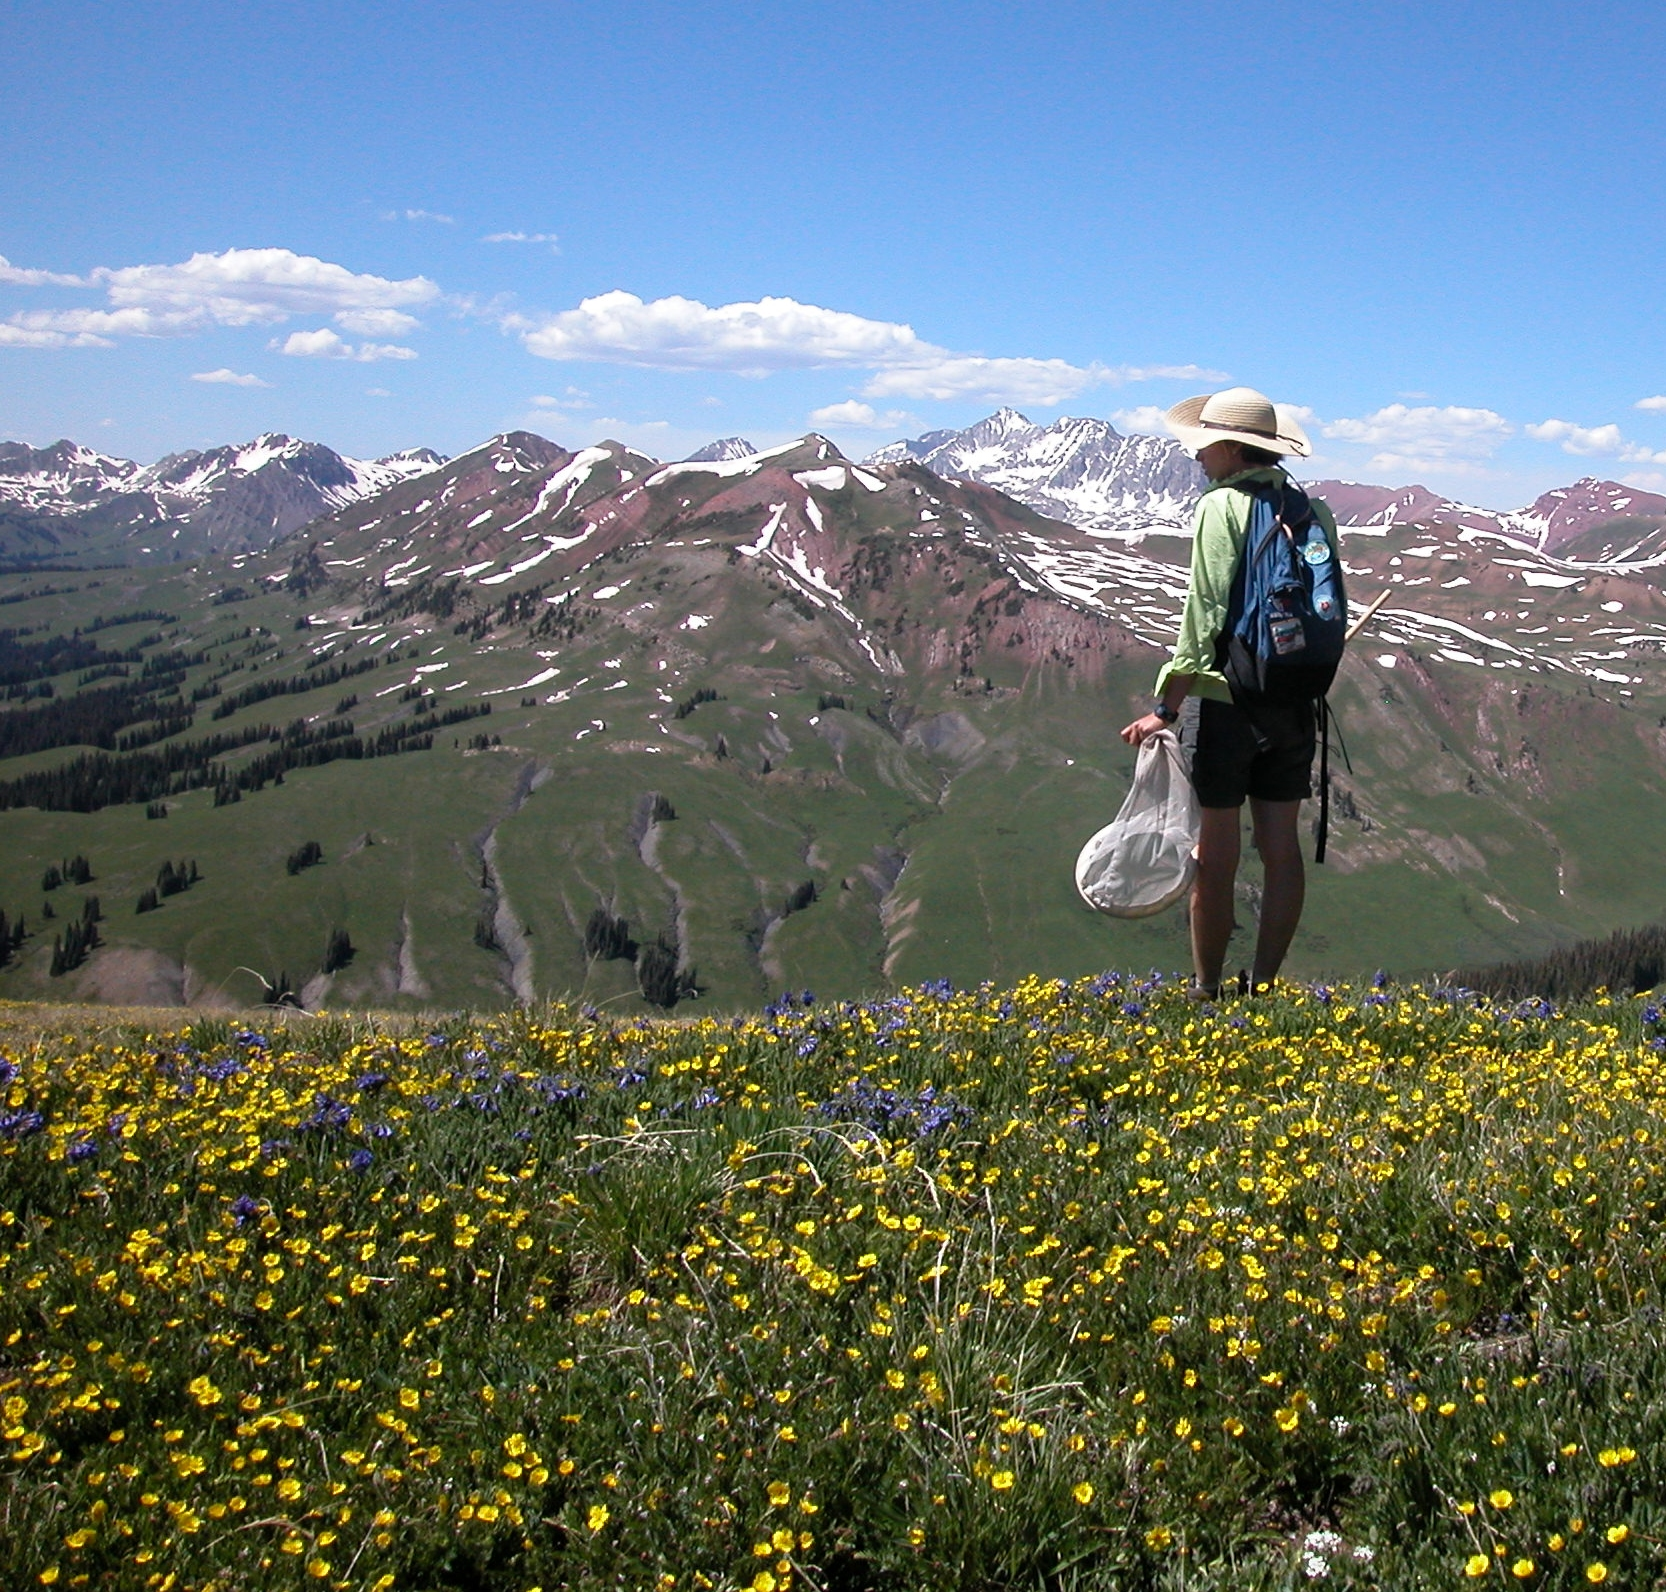 Assisting with bumblebee/ flower research in Colorado